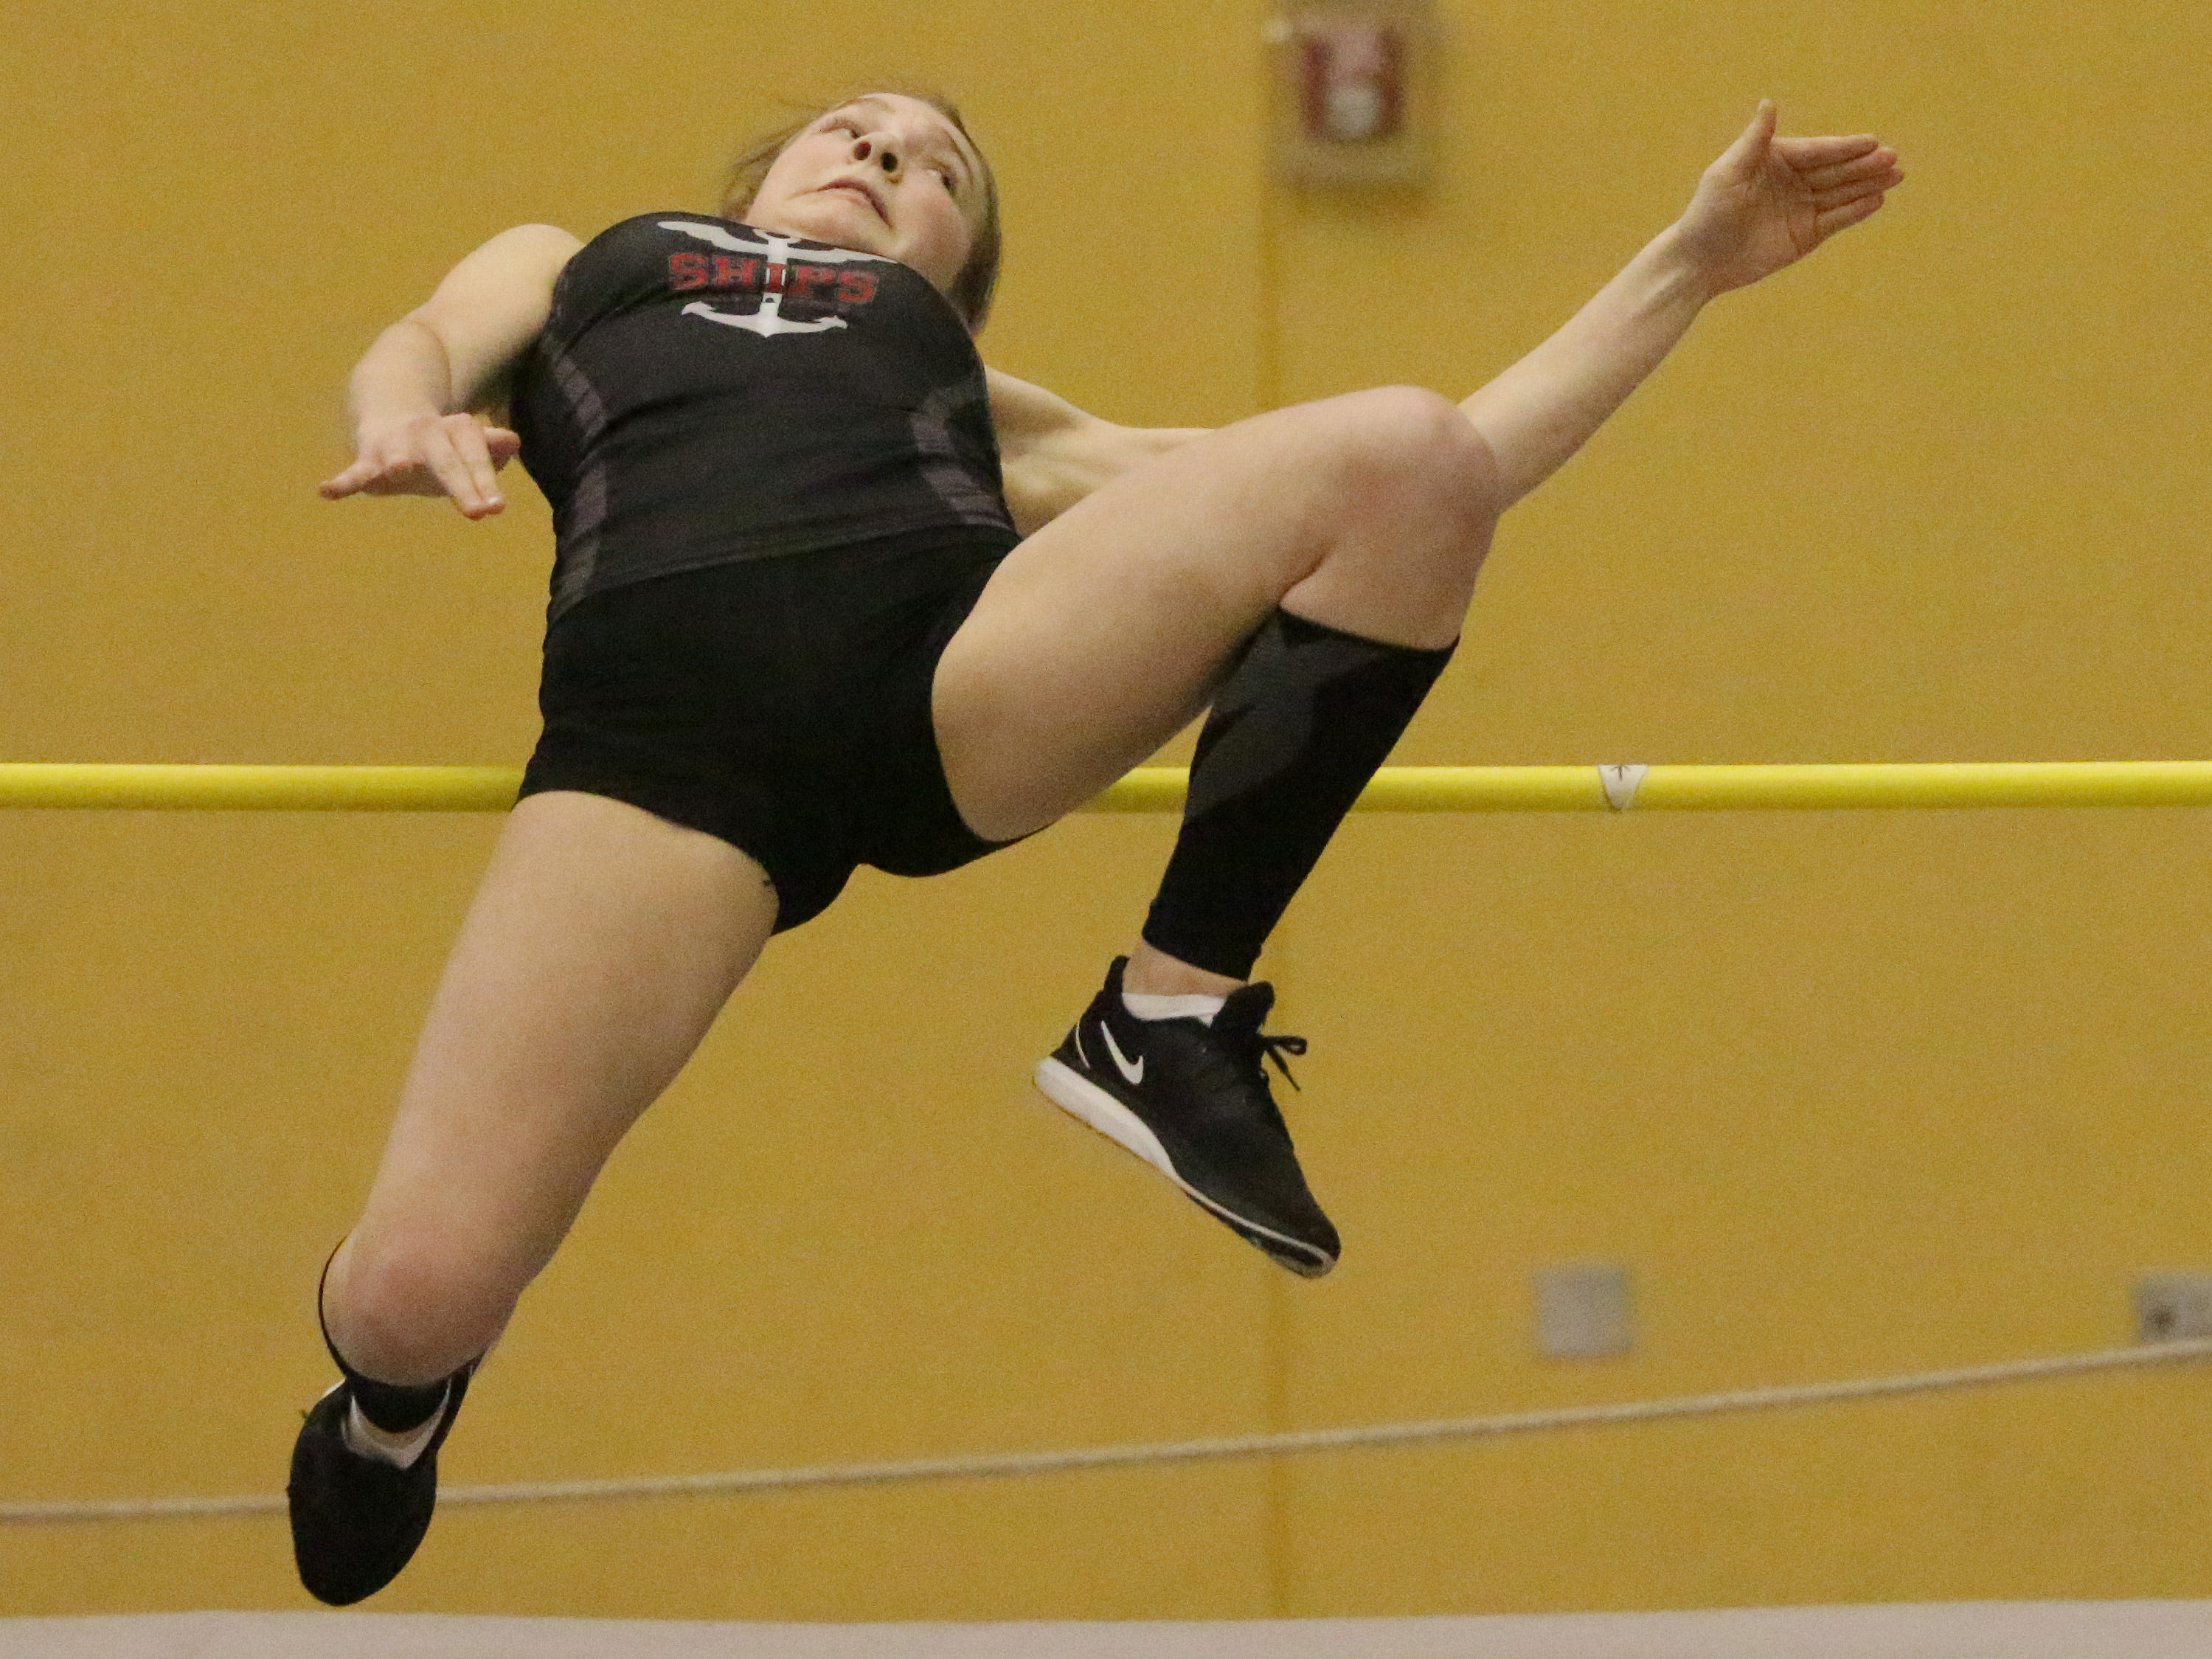 Manitowoc's Madalynn Buchner works to clear the bar during the Sheboygan North Invite track meet, Tuesday, April 2, 2019, in Sheboygan, Wis.